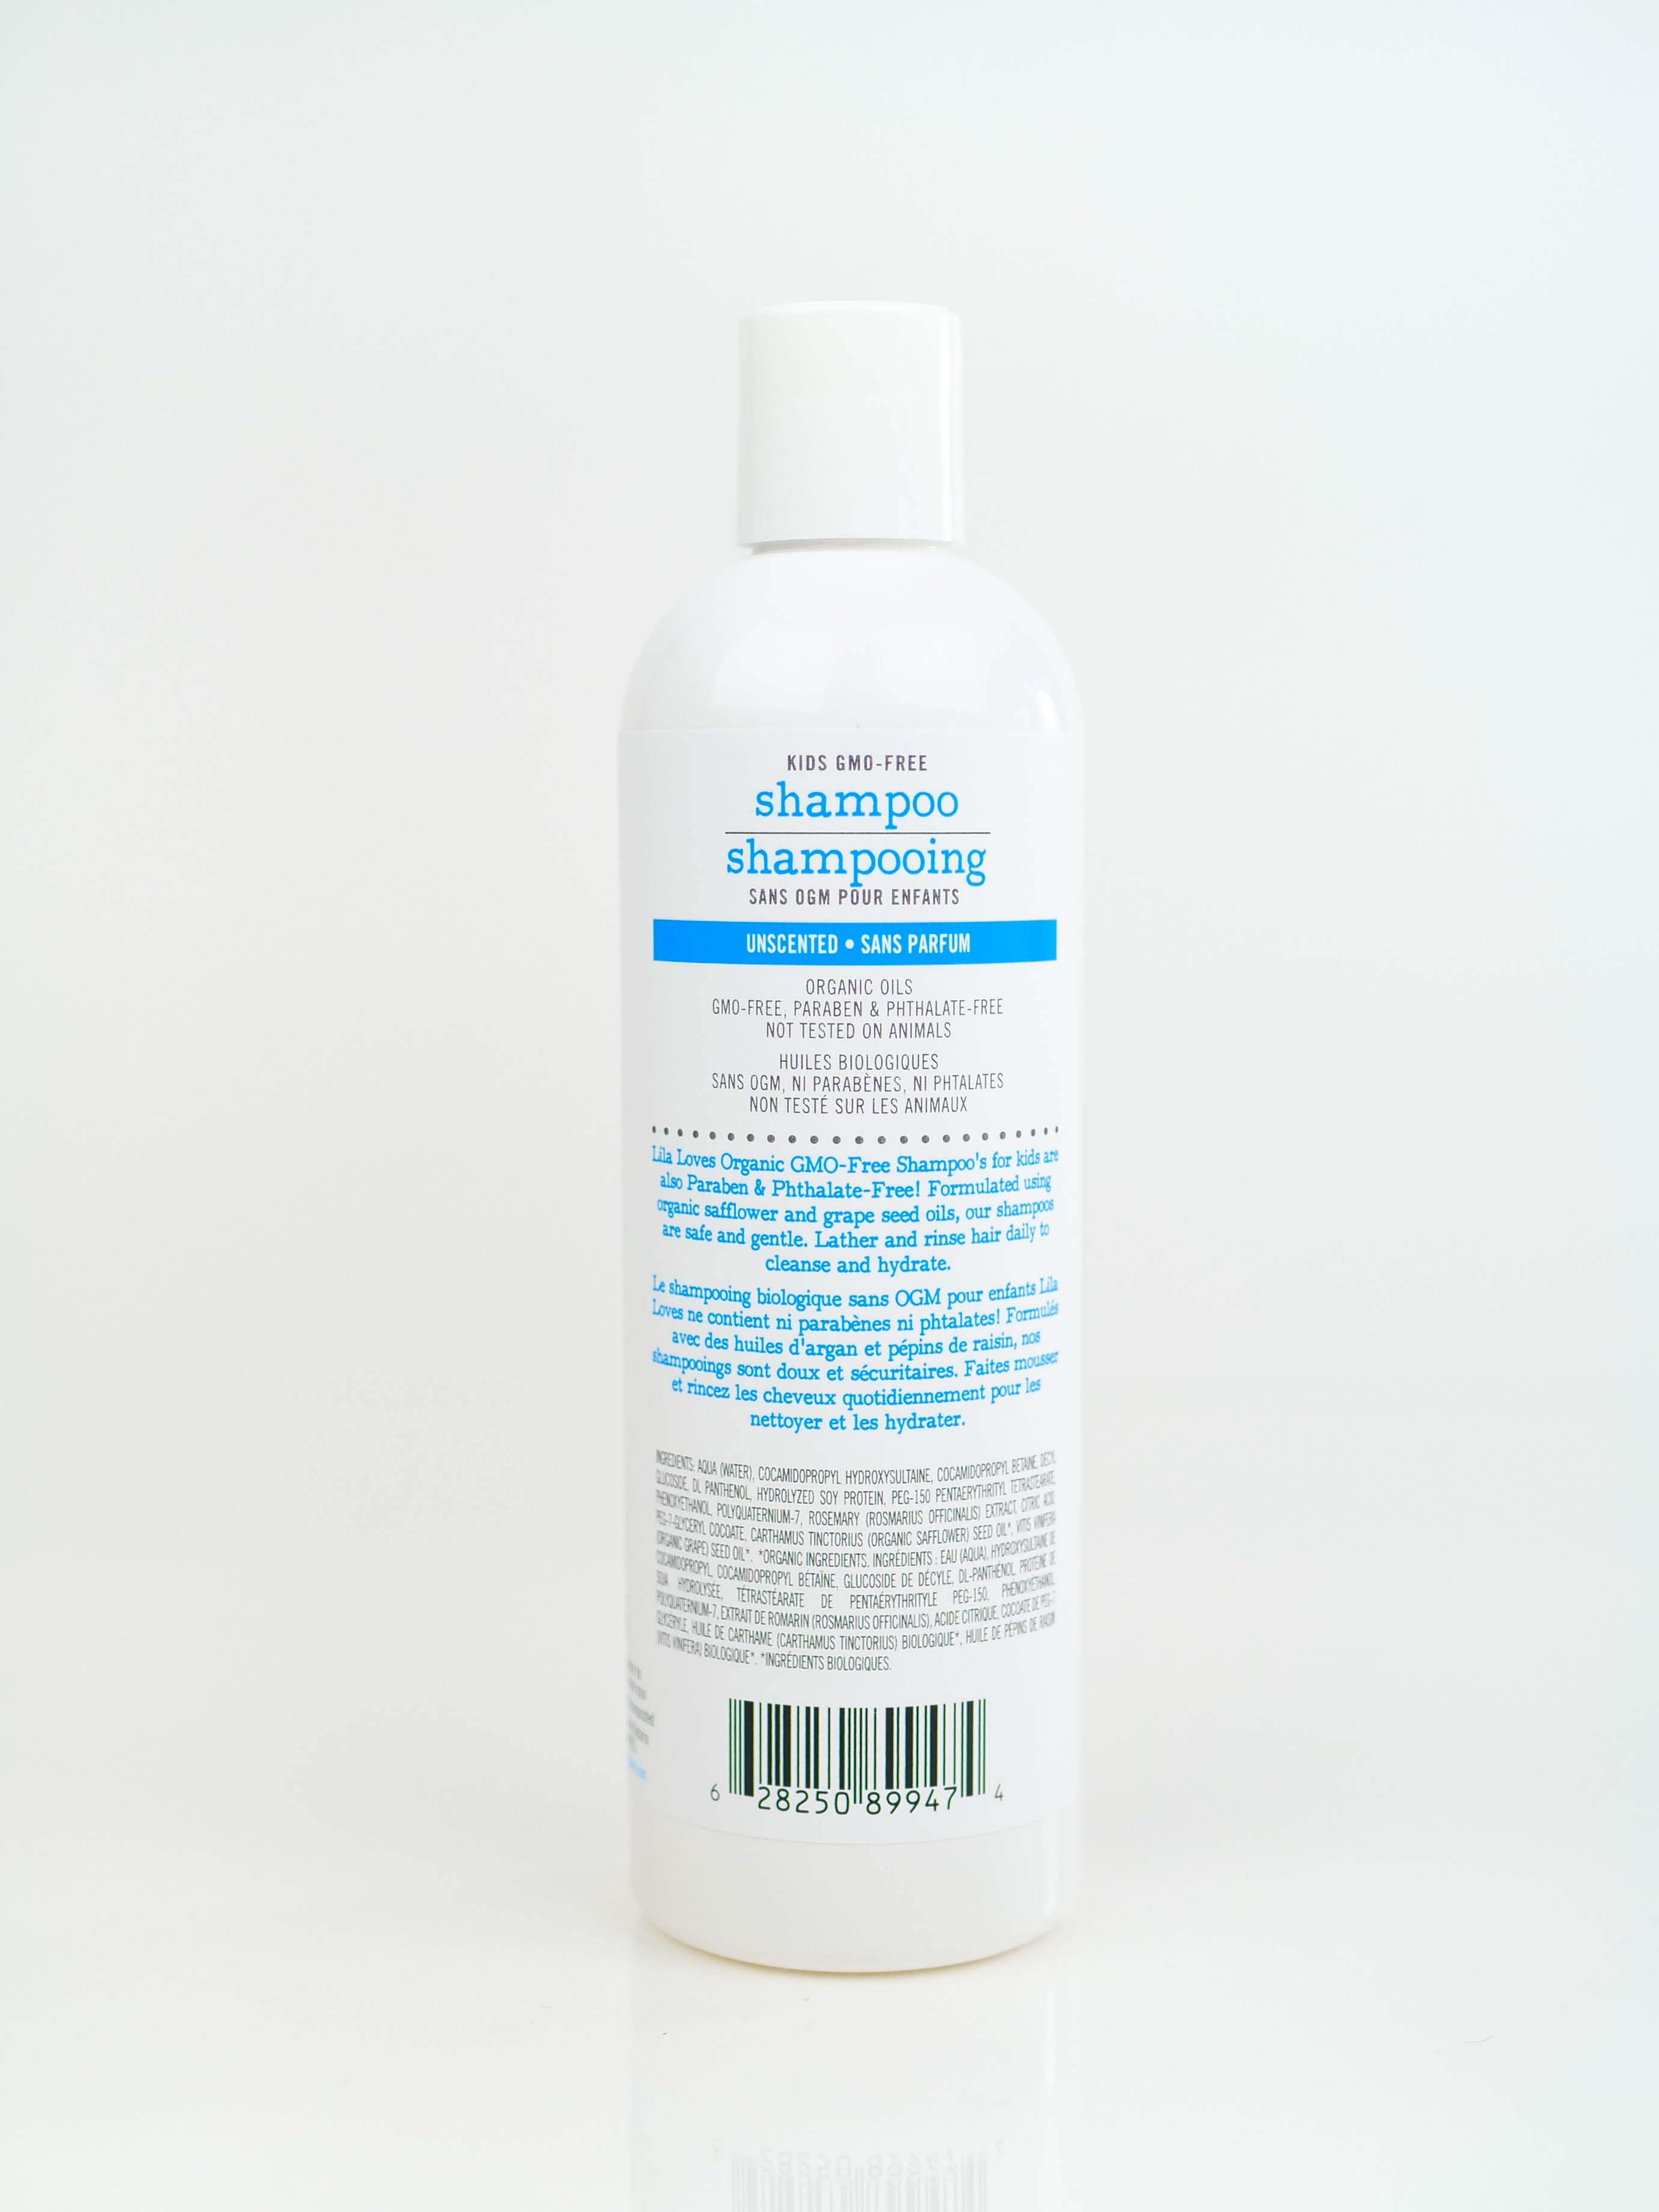 GMO-Free & SLS-Free Shampoo for Kids | Unscented for Sensitive Skin | 360ml